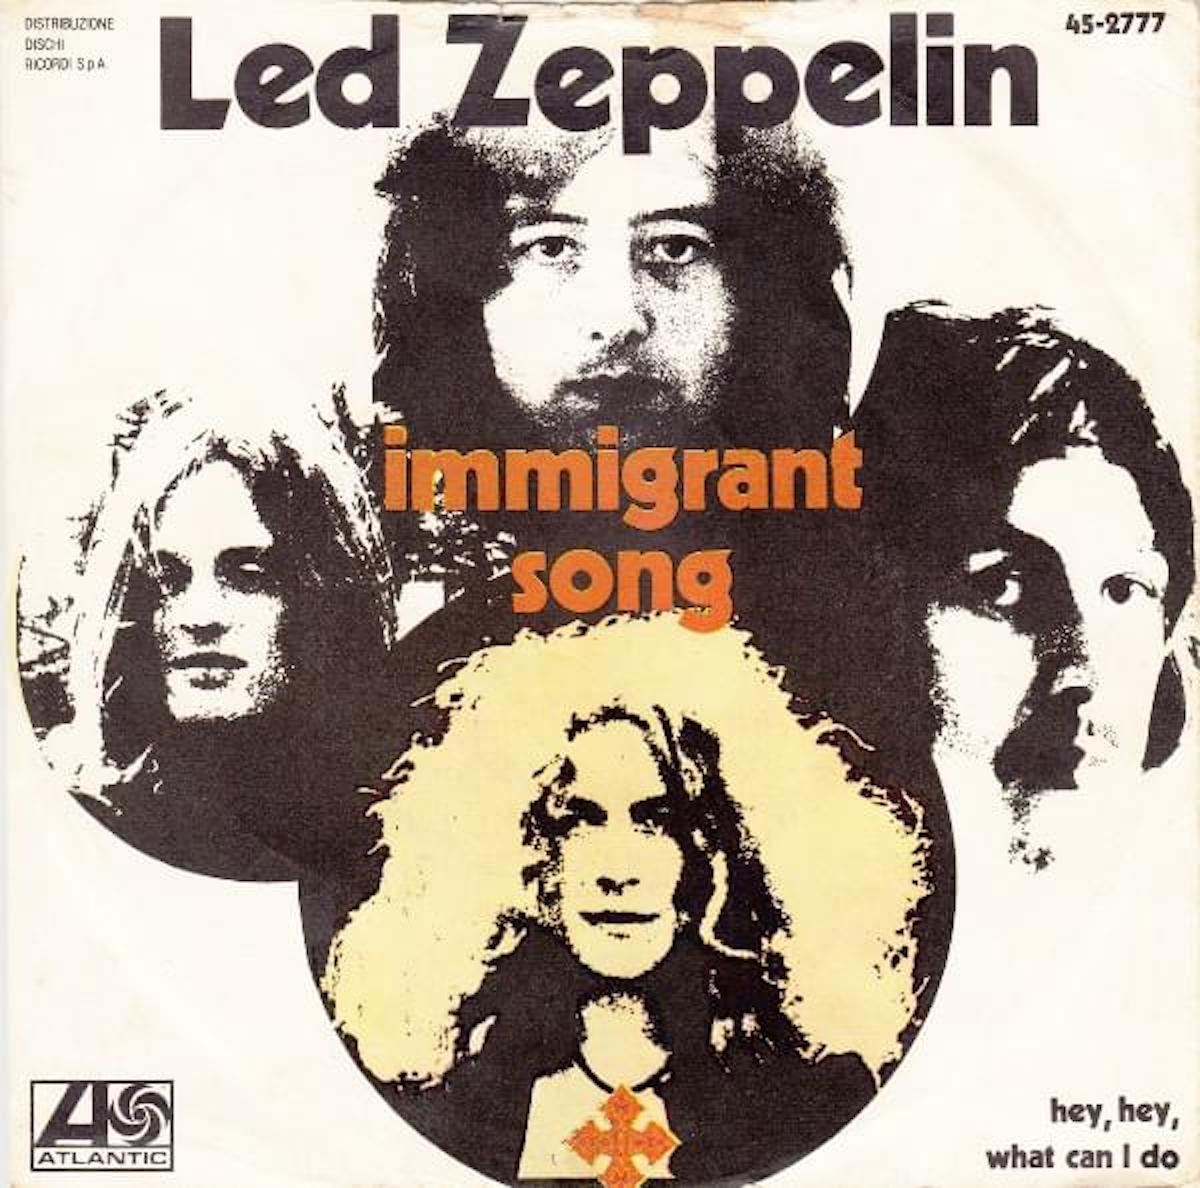 immigrant song album cover by led zeppelin